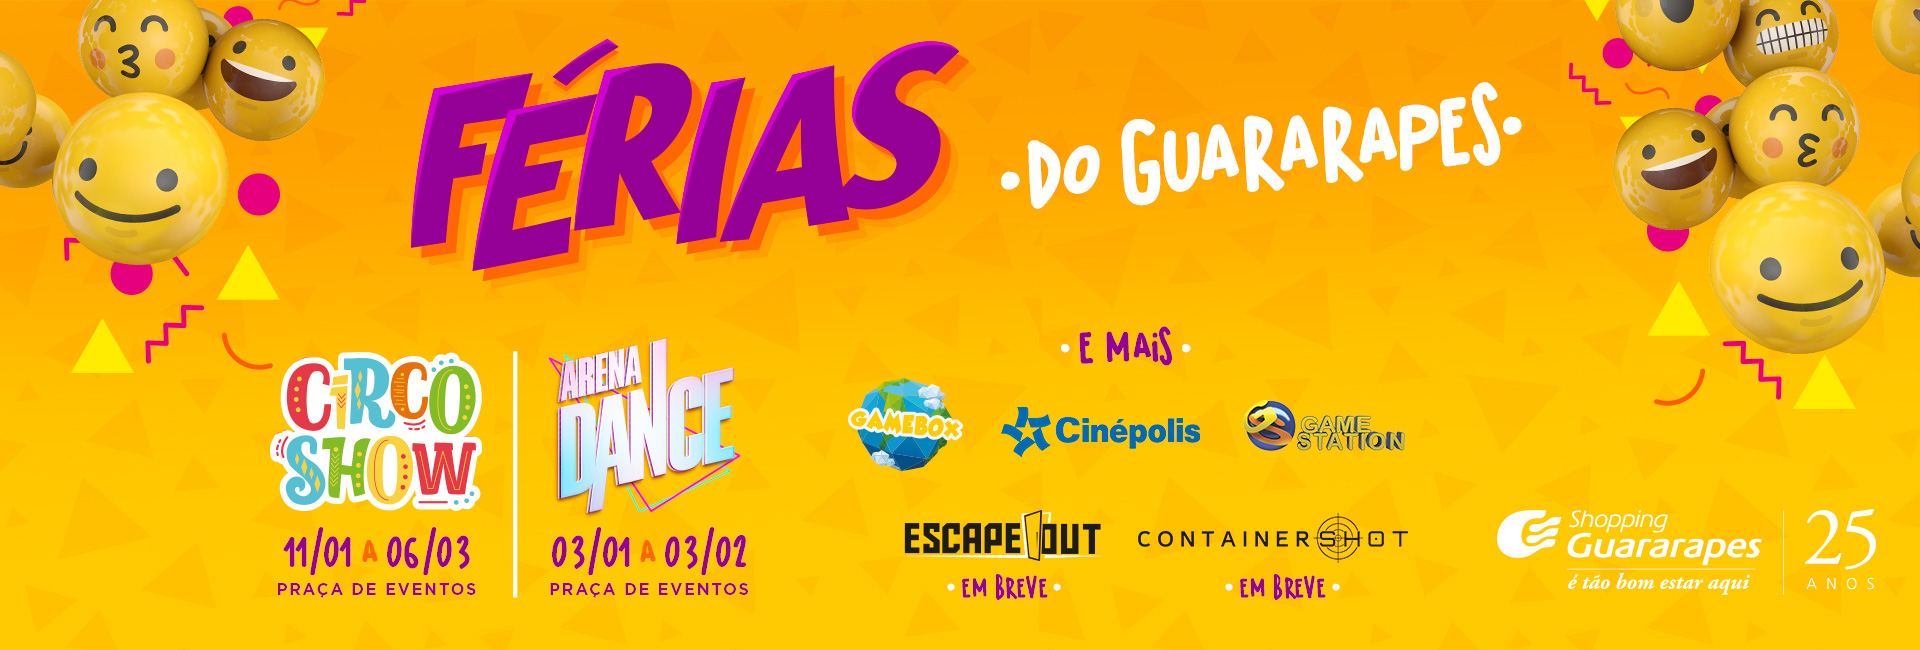 Férias do Guararapes